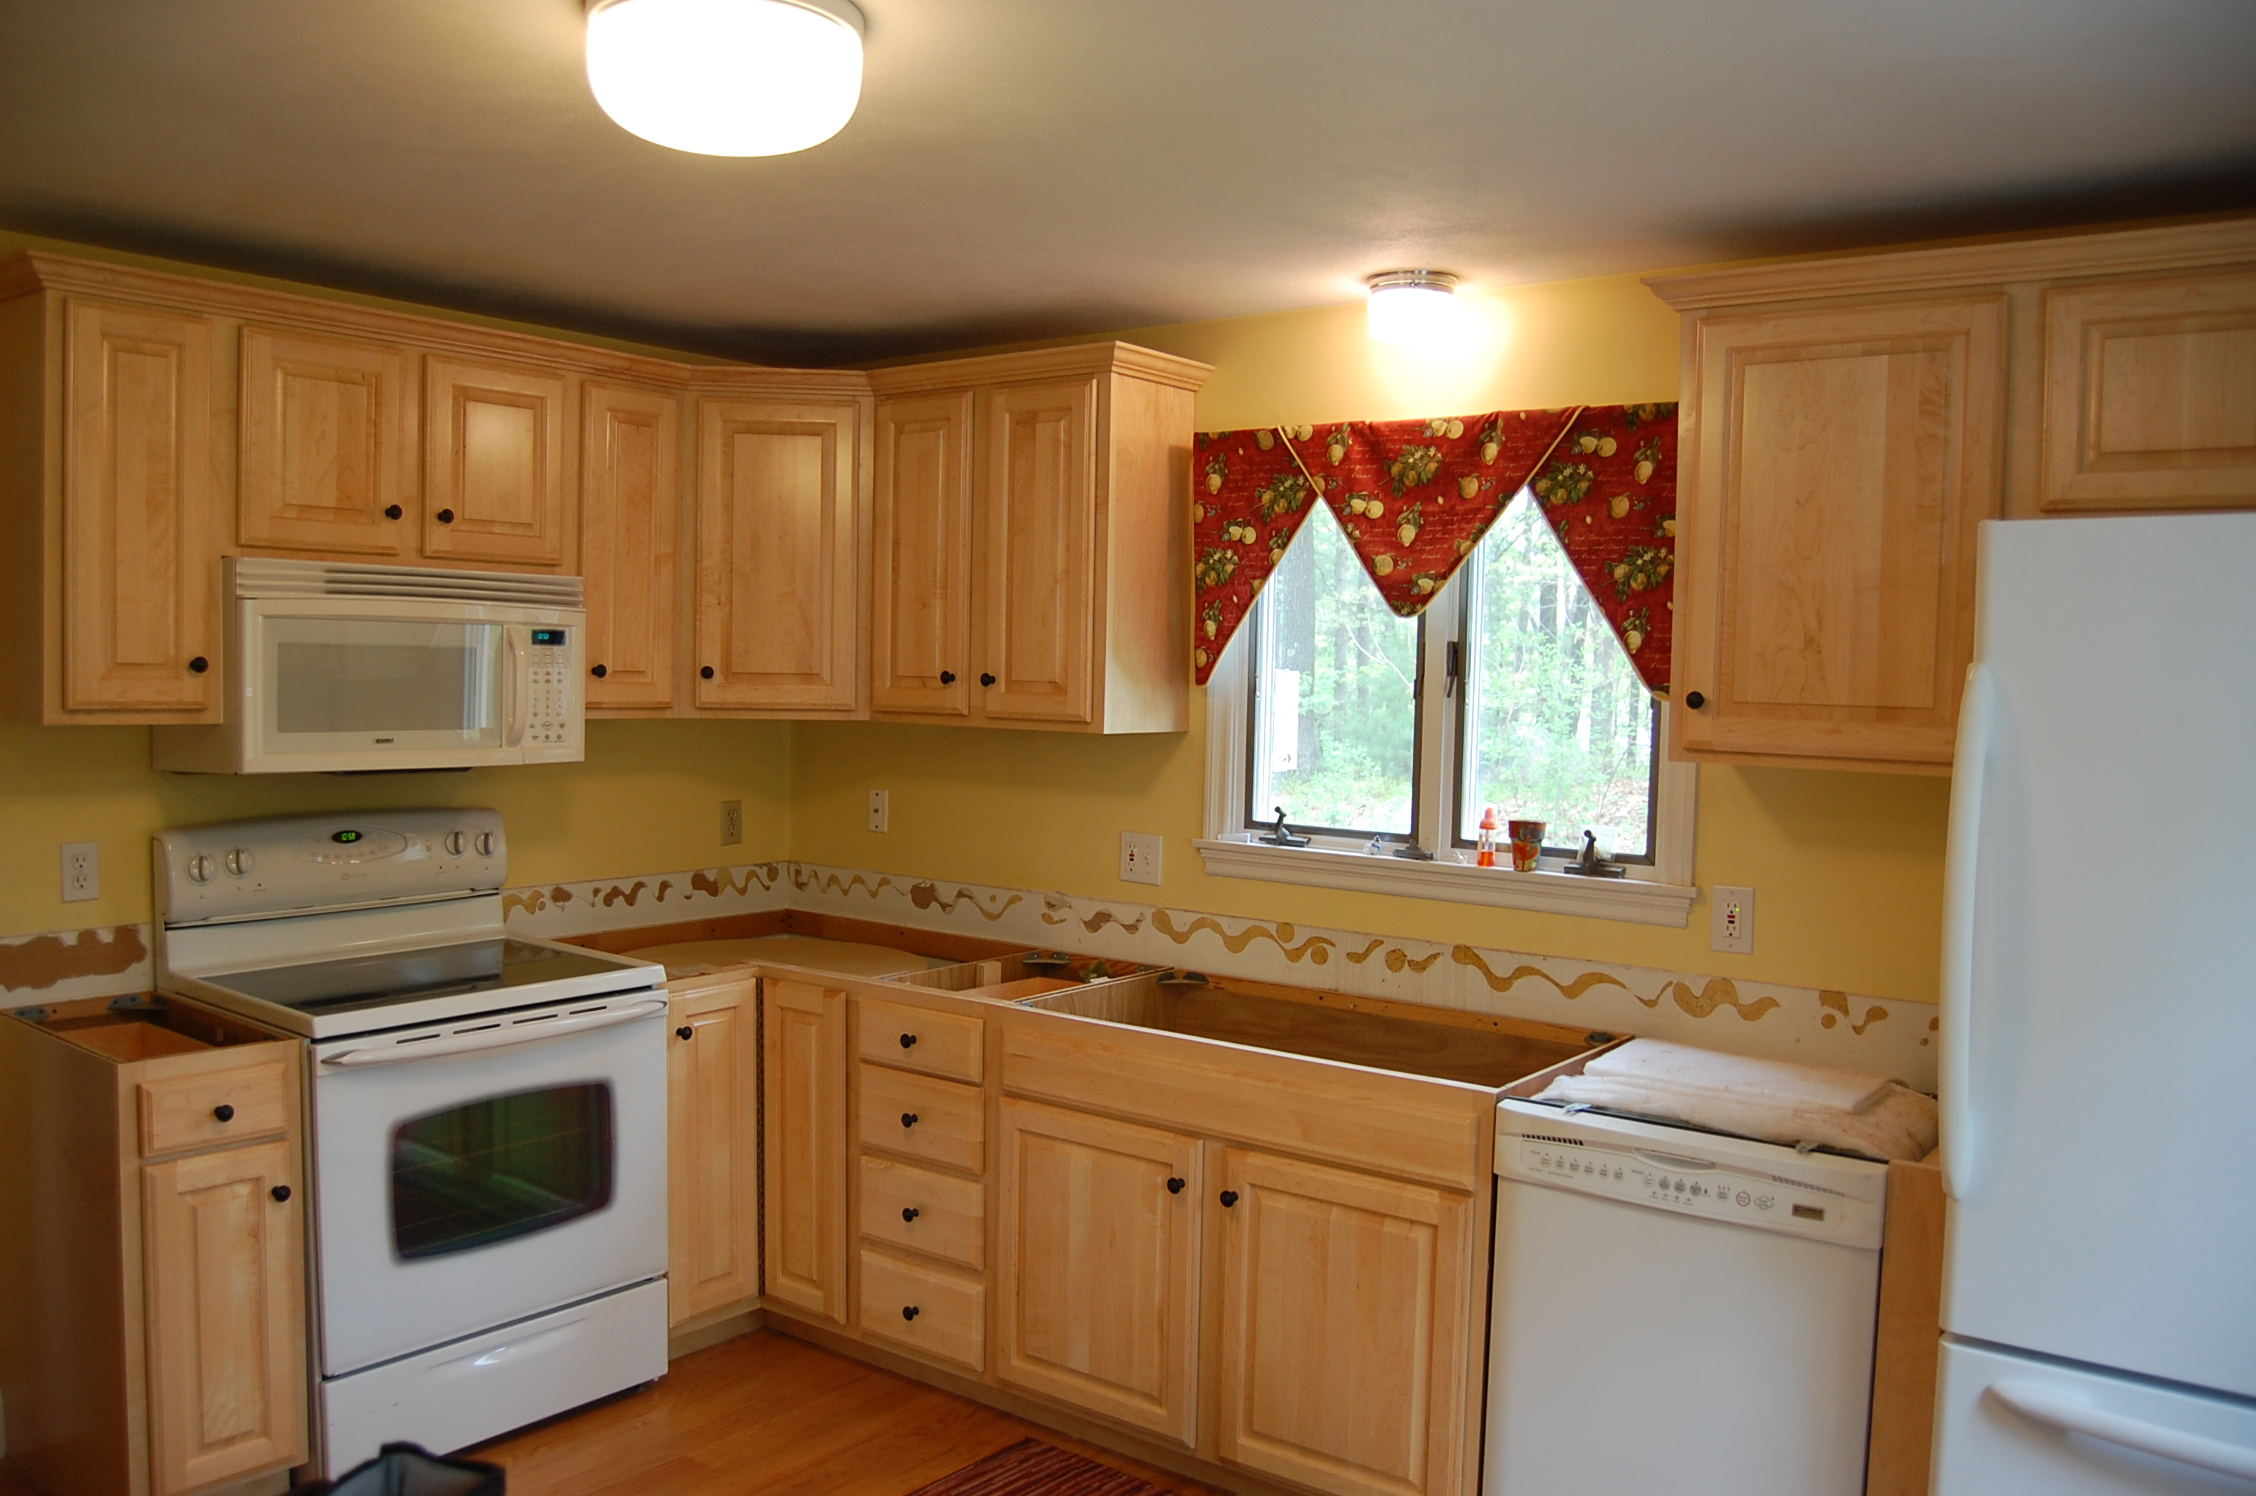 Re-facing Kitchen Cabinets